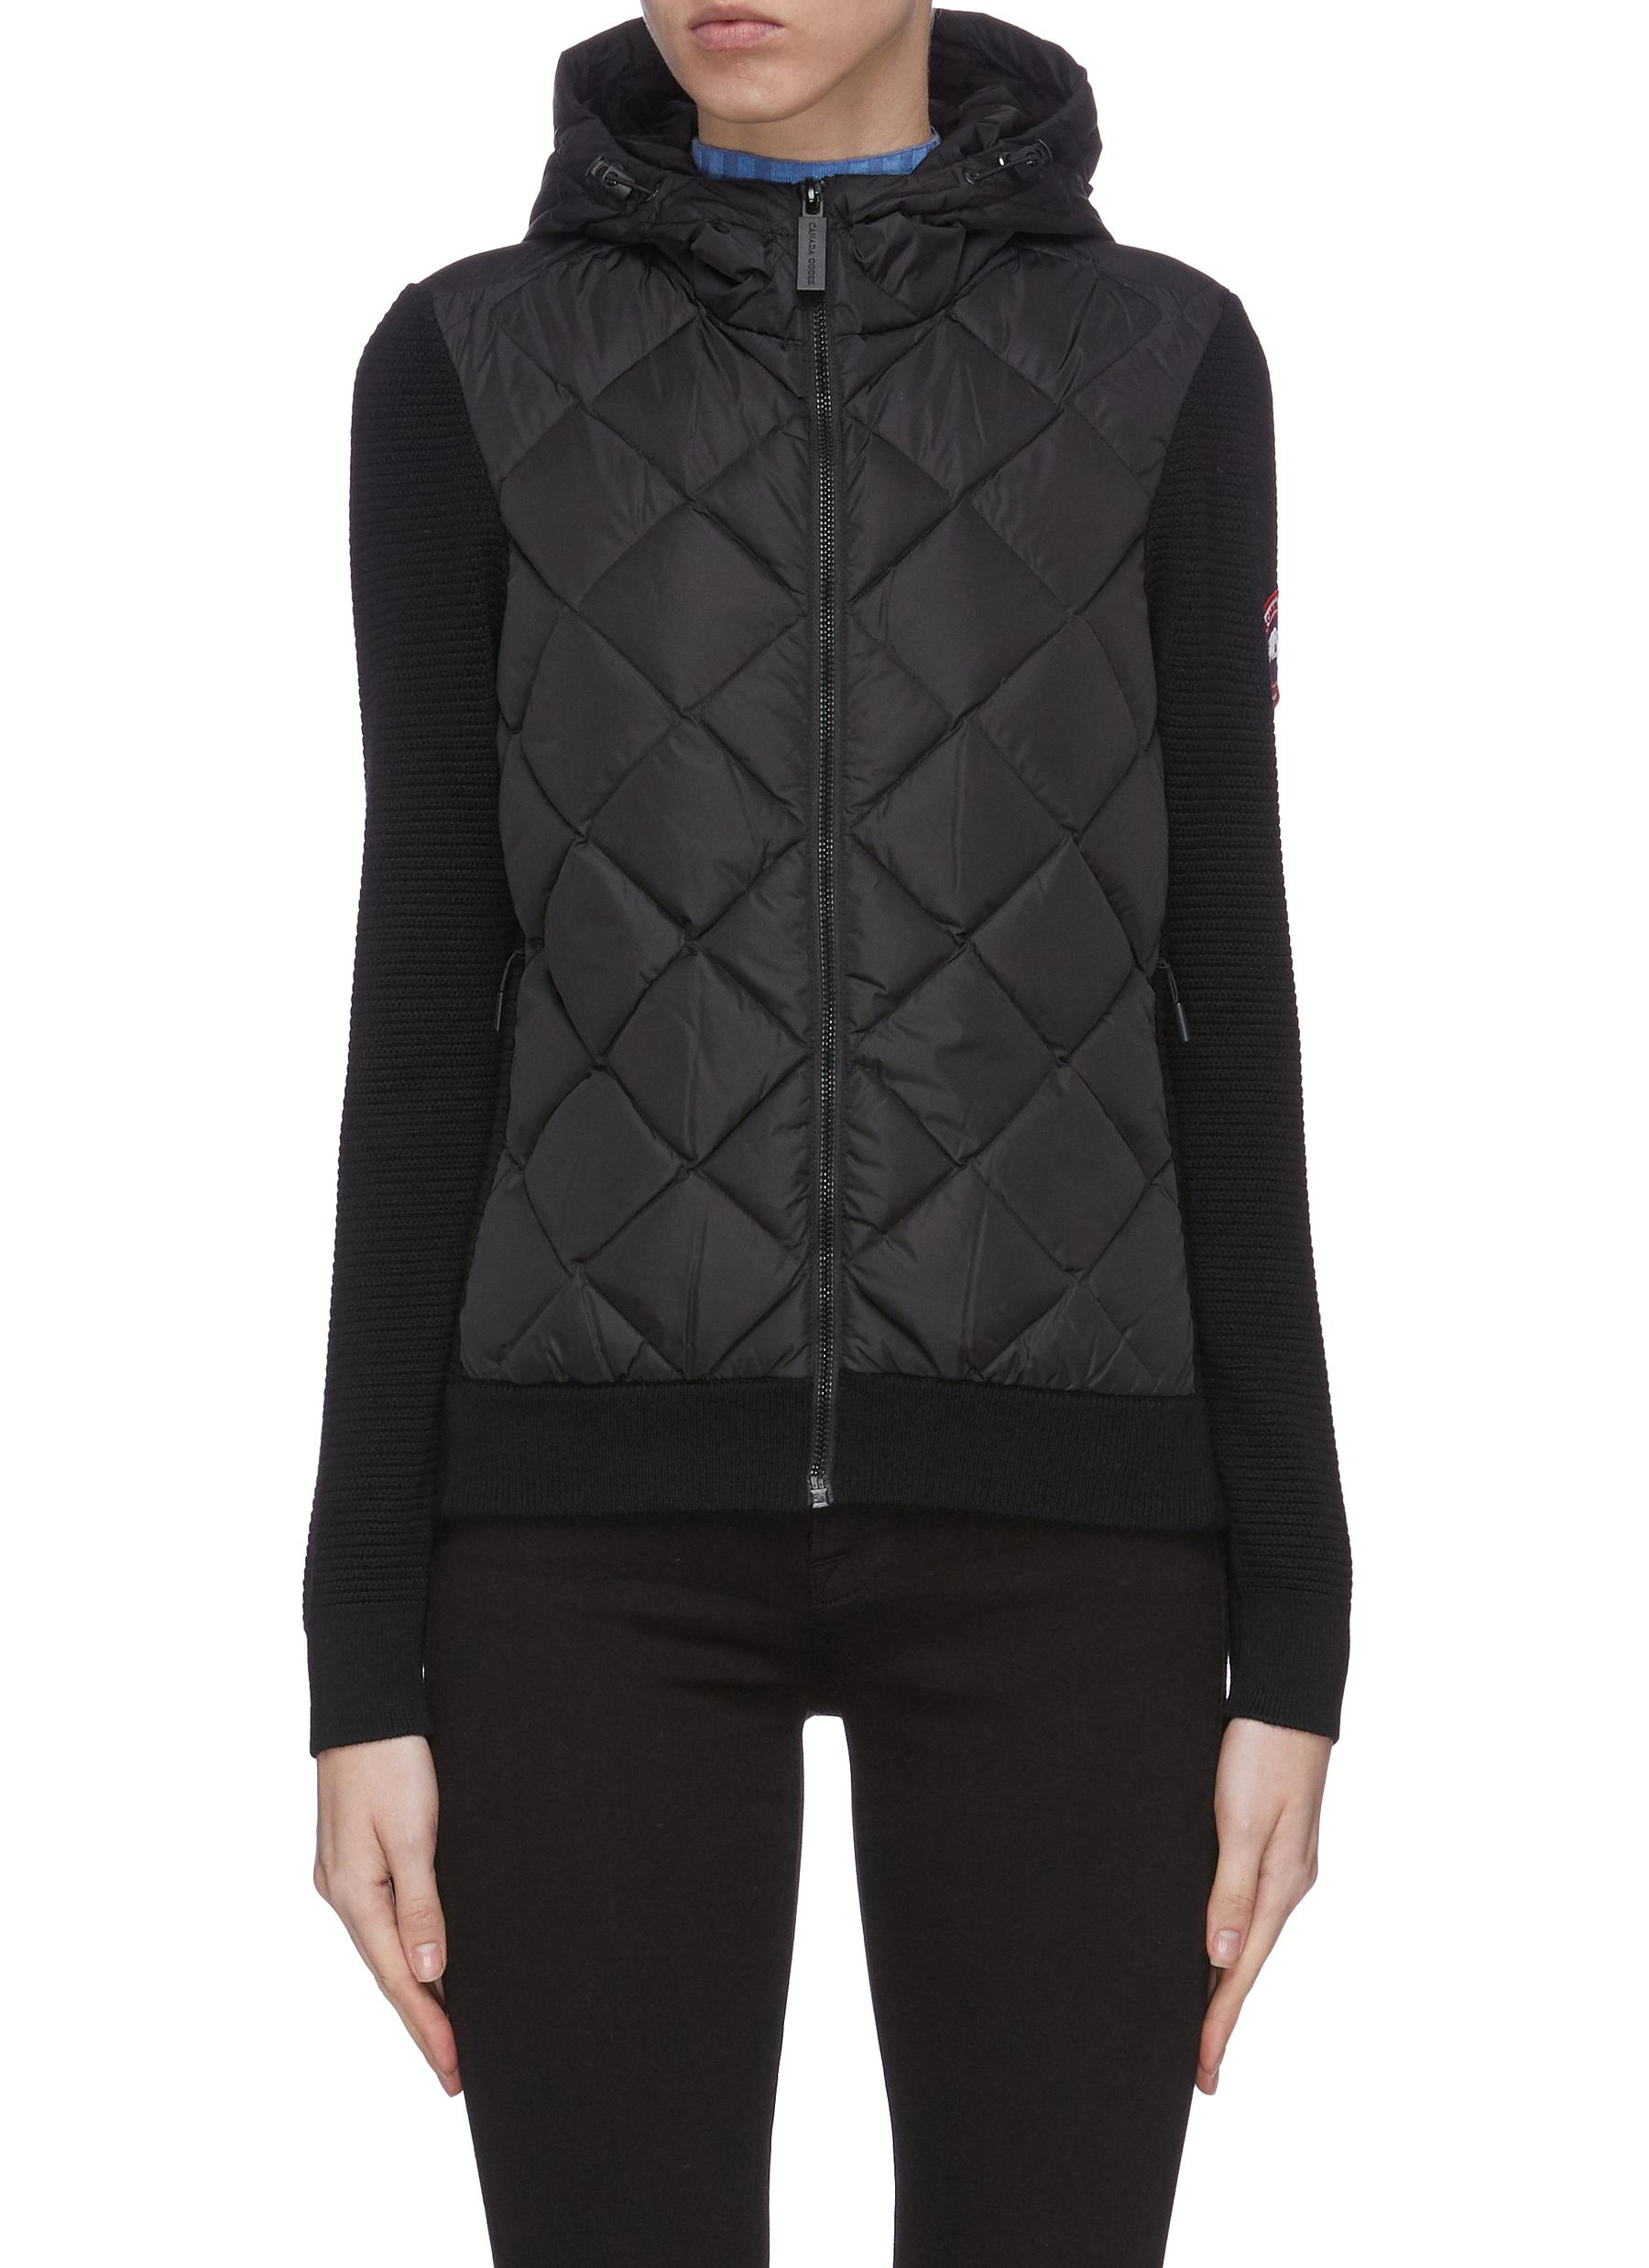 Buy Canada Goose Jackets 'Hybridge' quilted knit hoody